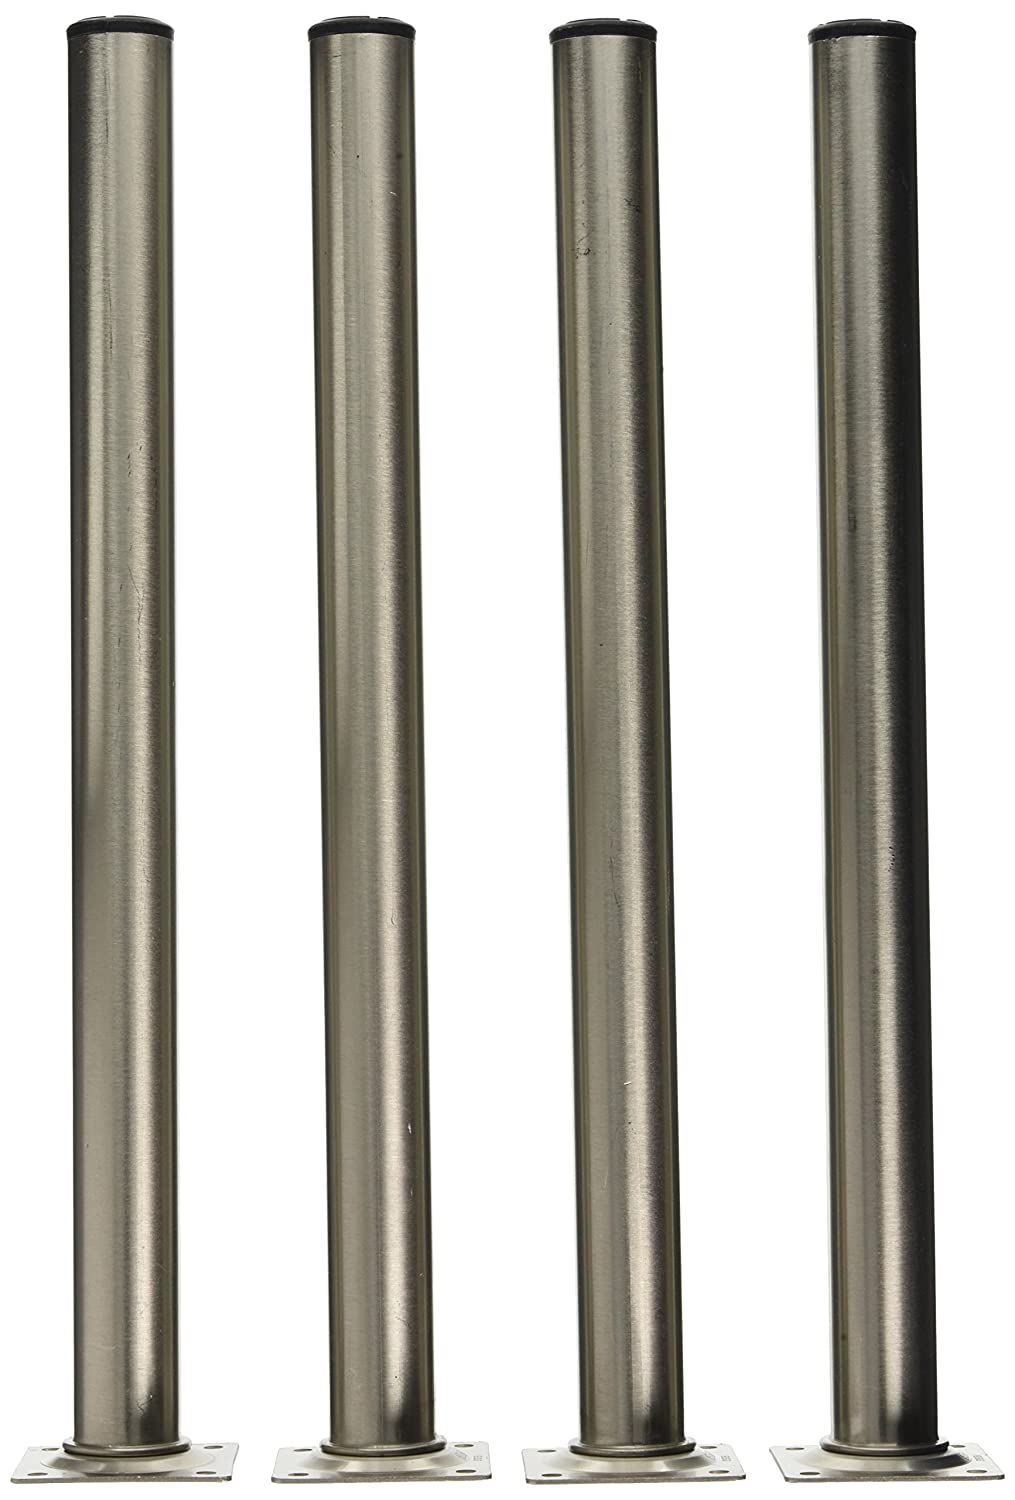 Element System 11100-00174 400 mm Length 30 mm Diameter Round Pipe Furniture Legs includes Screw-Mounting Plate - Stainless Steel Optics, Set of 4 pieces. DIY Element System